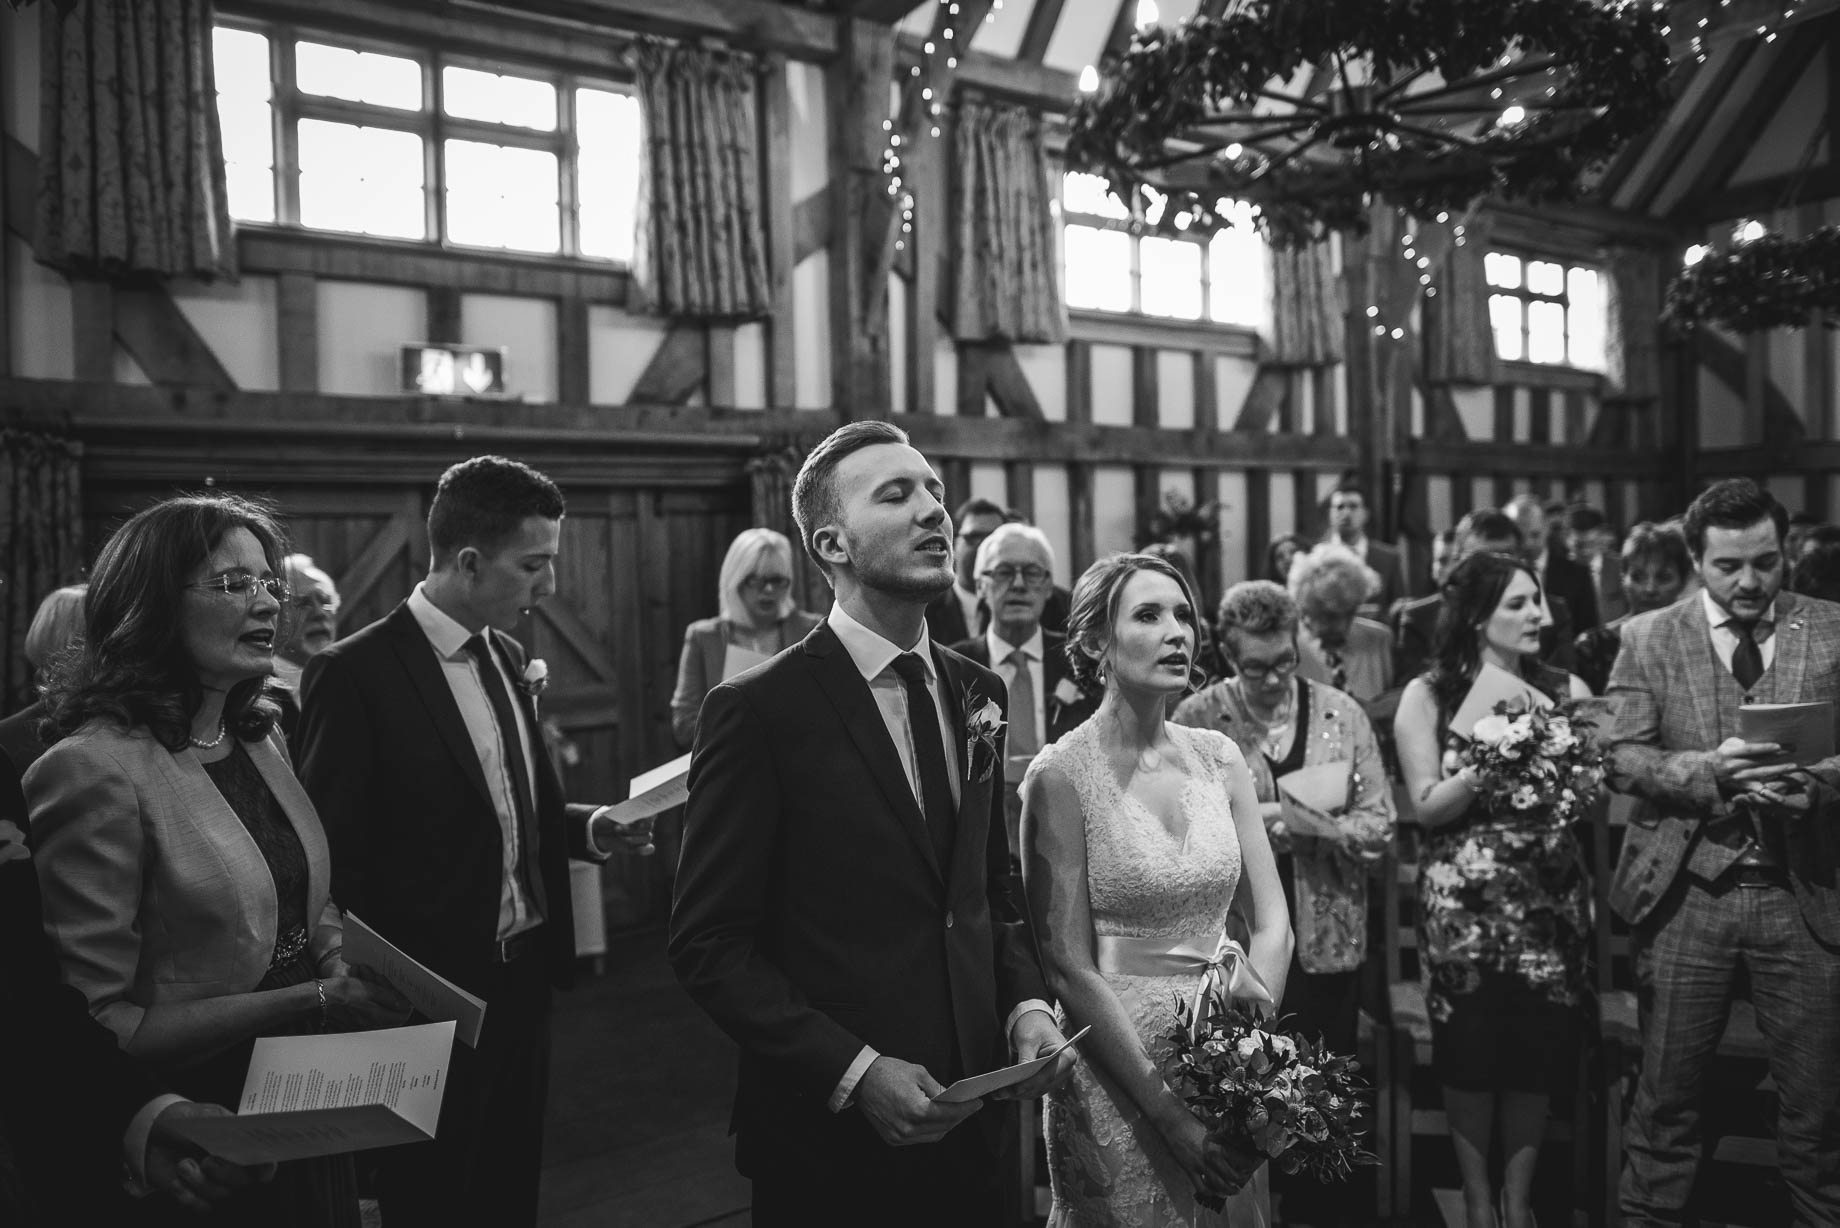 Surrey Wedding Photography by Guy Collier - Becca and James (41 of 145)